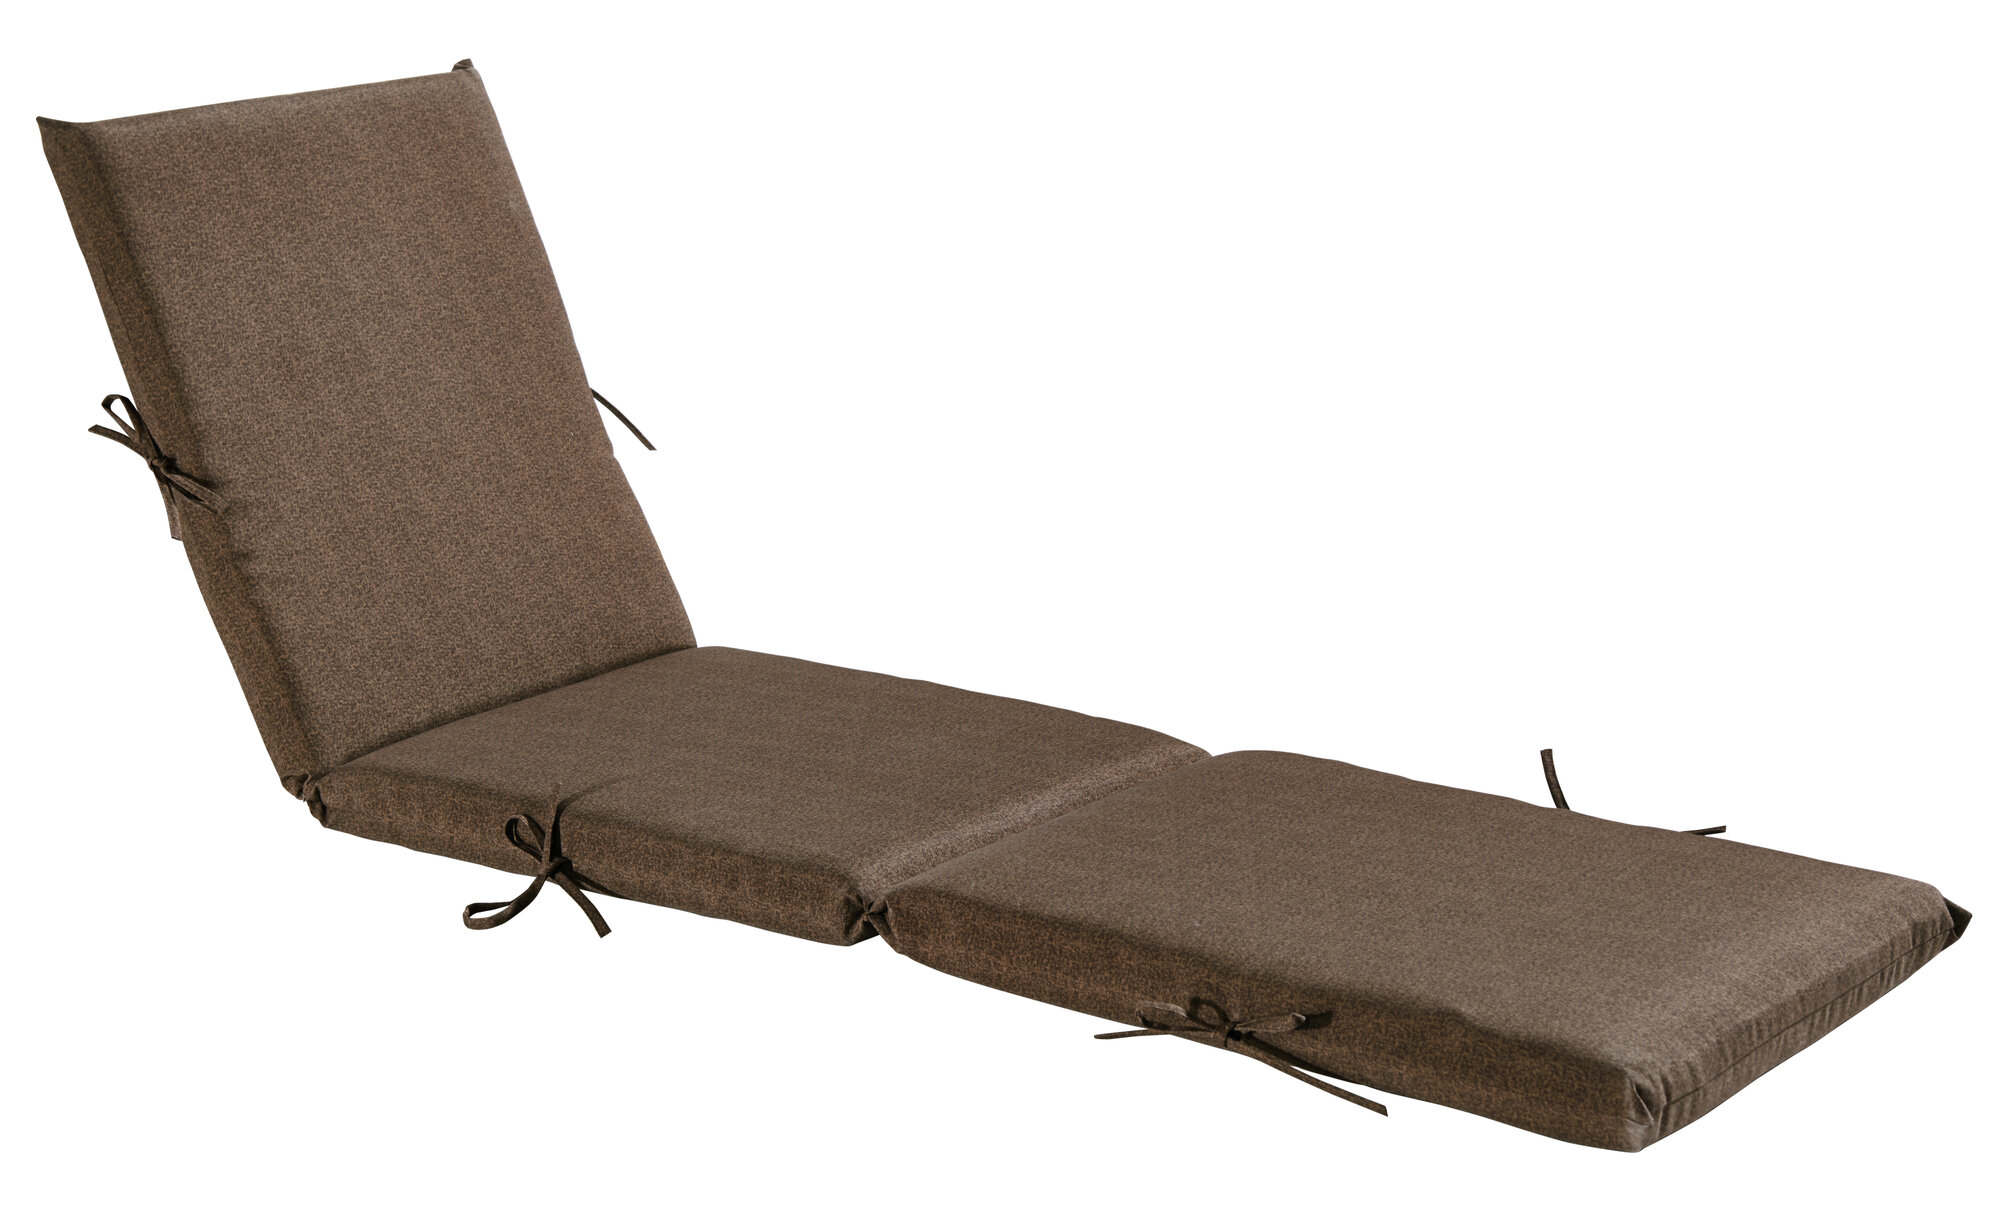 Bossima outdoor chaise lounge cushion for Chaise lounge cushion outdoor